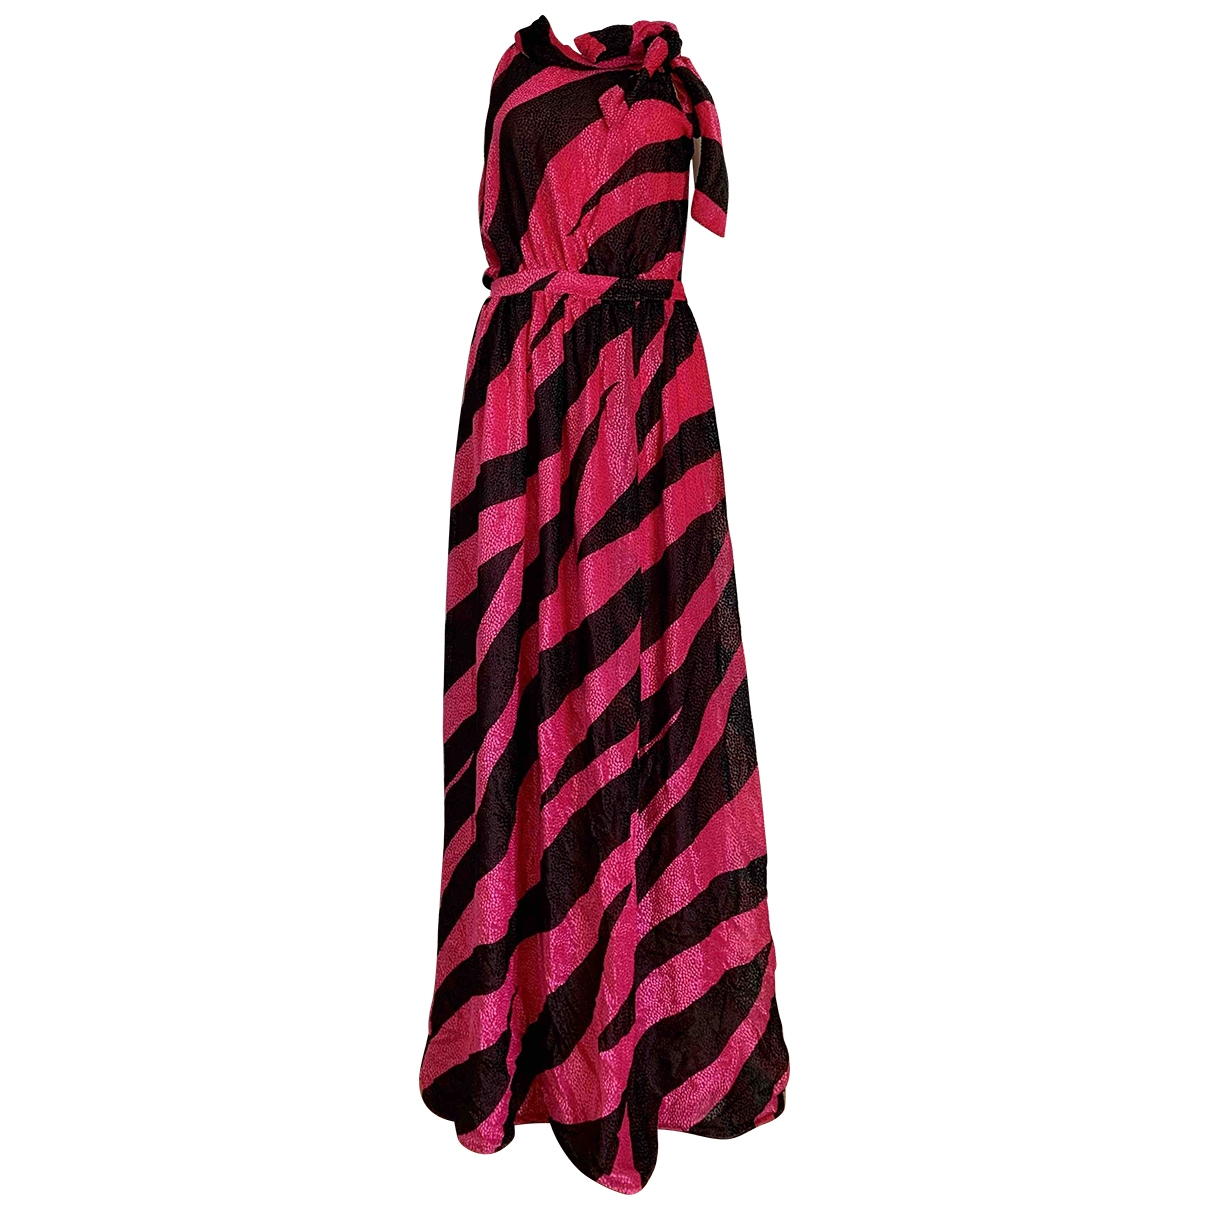 Moschino \N Kleid in  Bunt Polyester